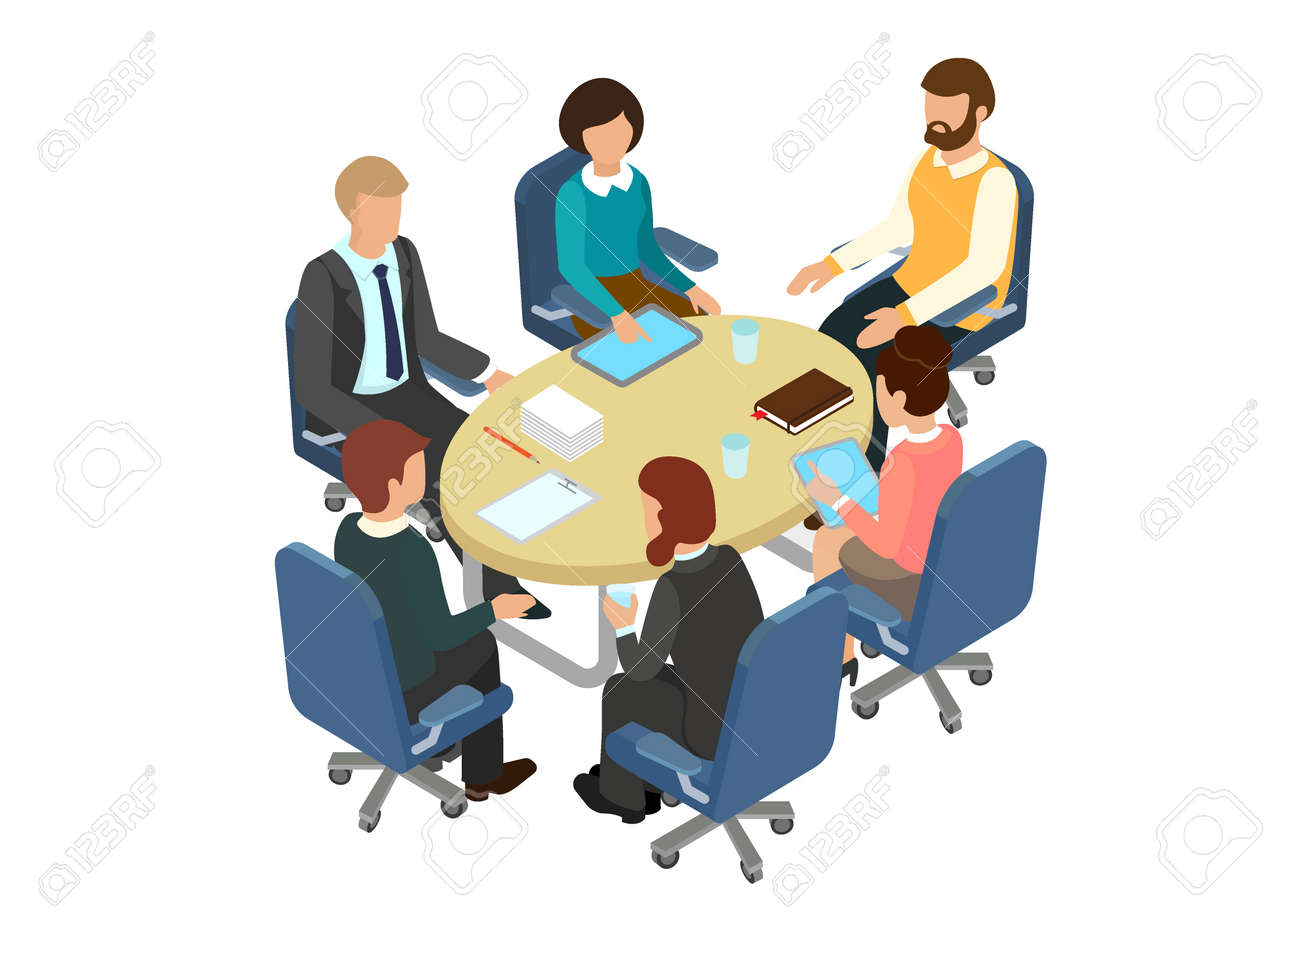 Round Table La Mesa.Conversation At The Round Table In The Office Business Brainstorming